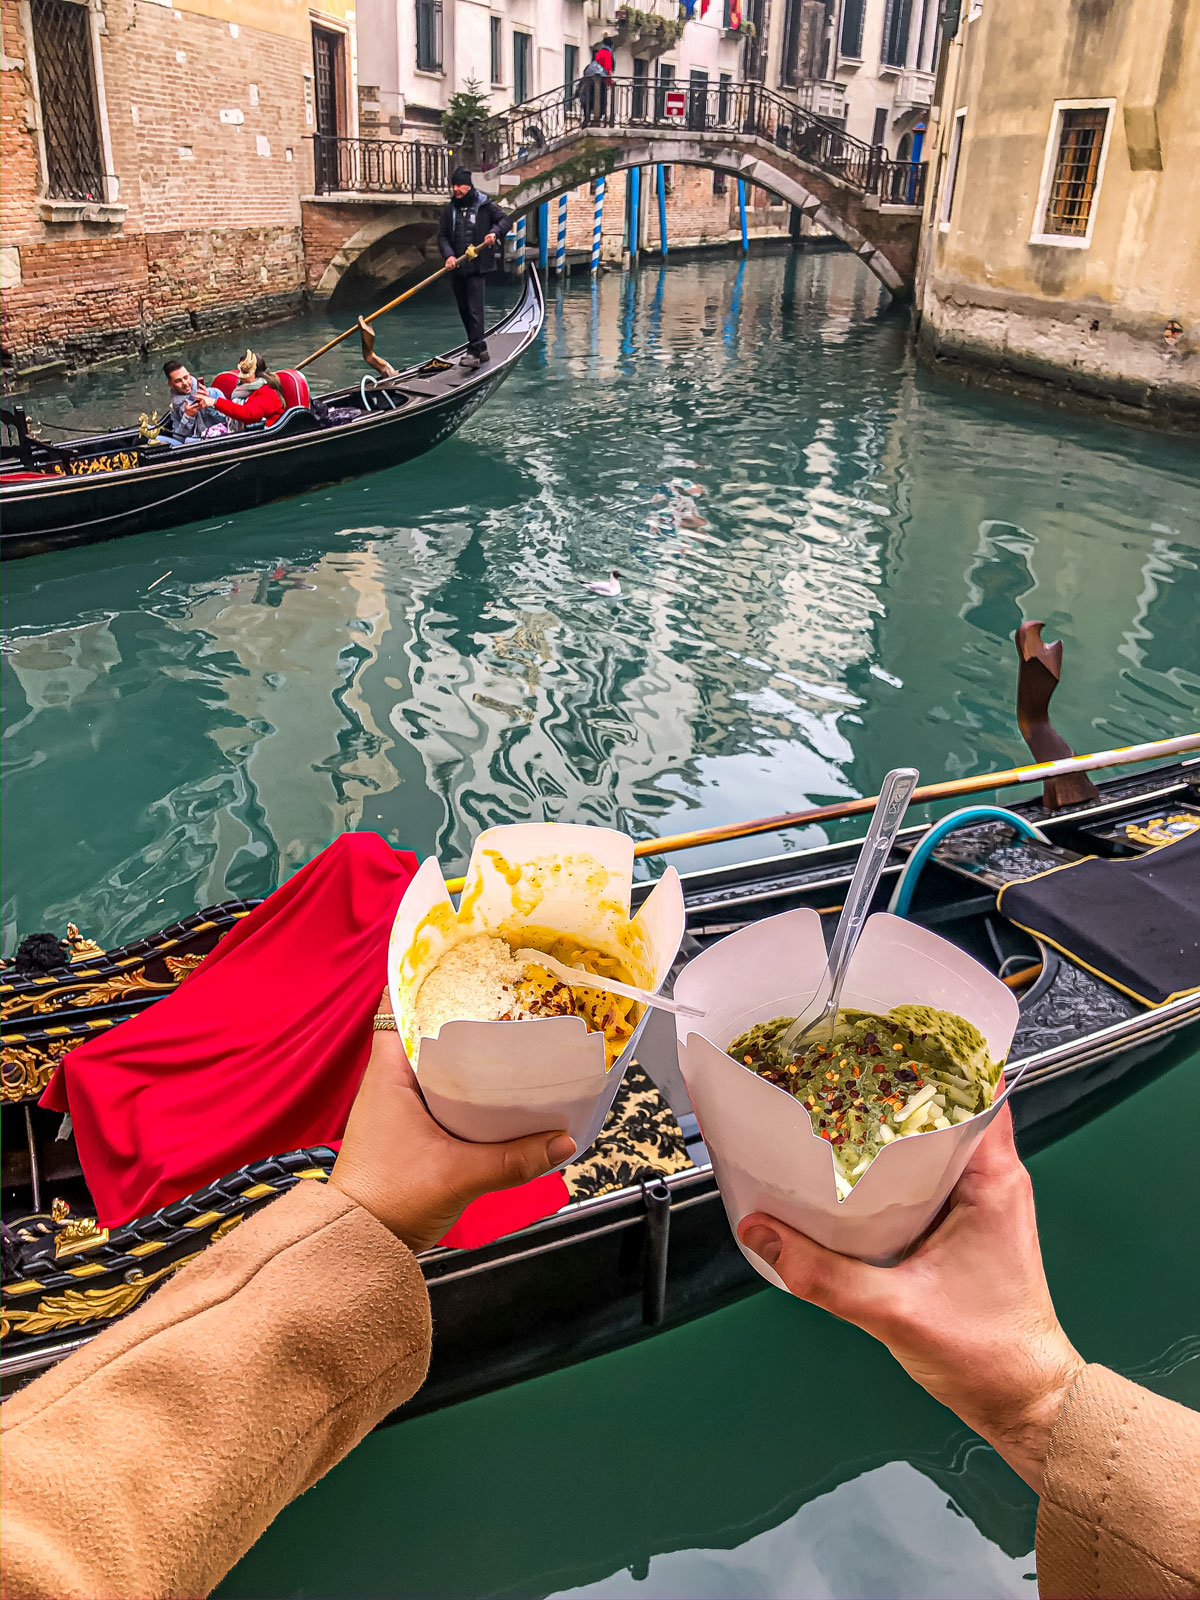 27-top-things-to-do-in-Venice---Venice-Instagram-spots-–-Venice-bucket-list---kelseyinlondon---kelsey-heinrichs---venice-gondola-ride---venice-grand-canal